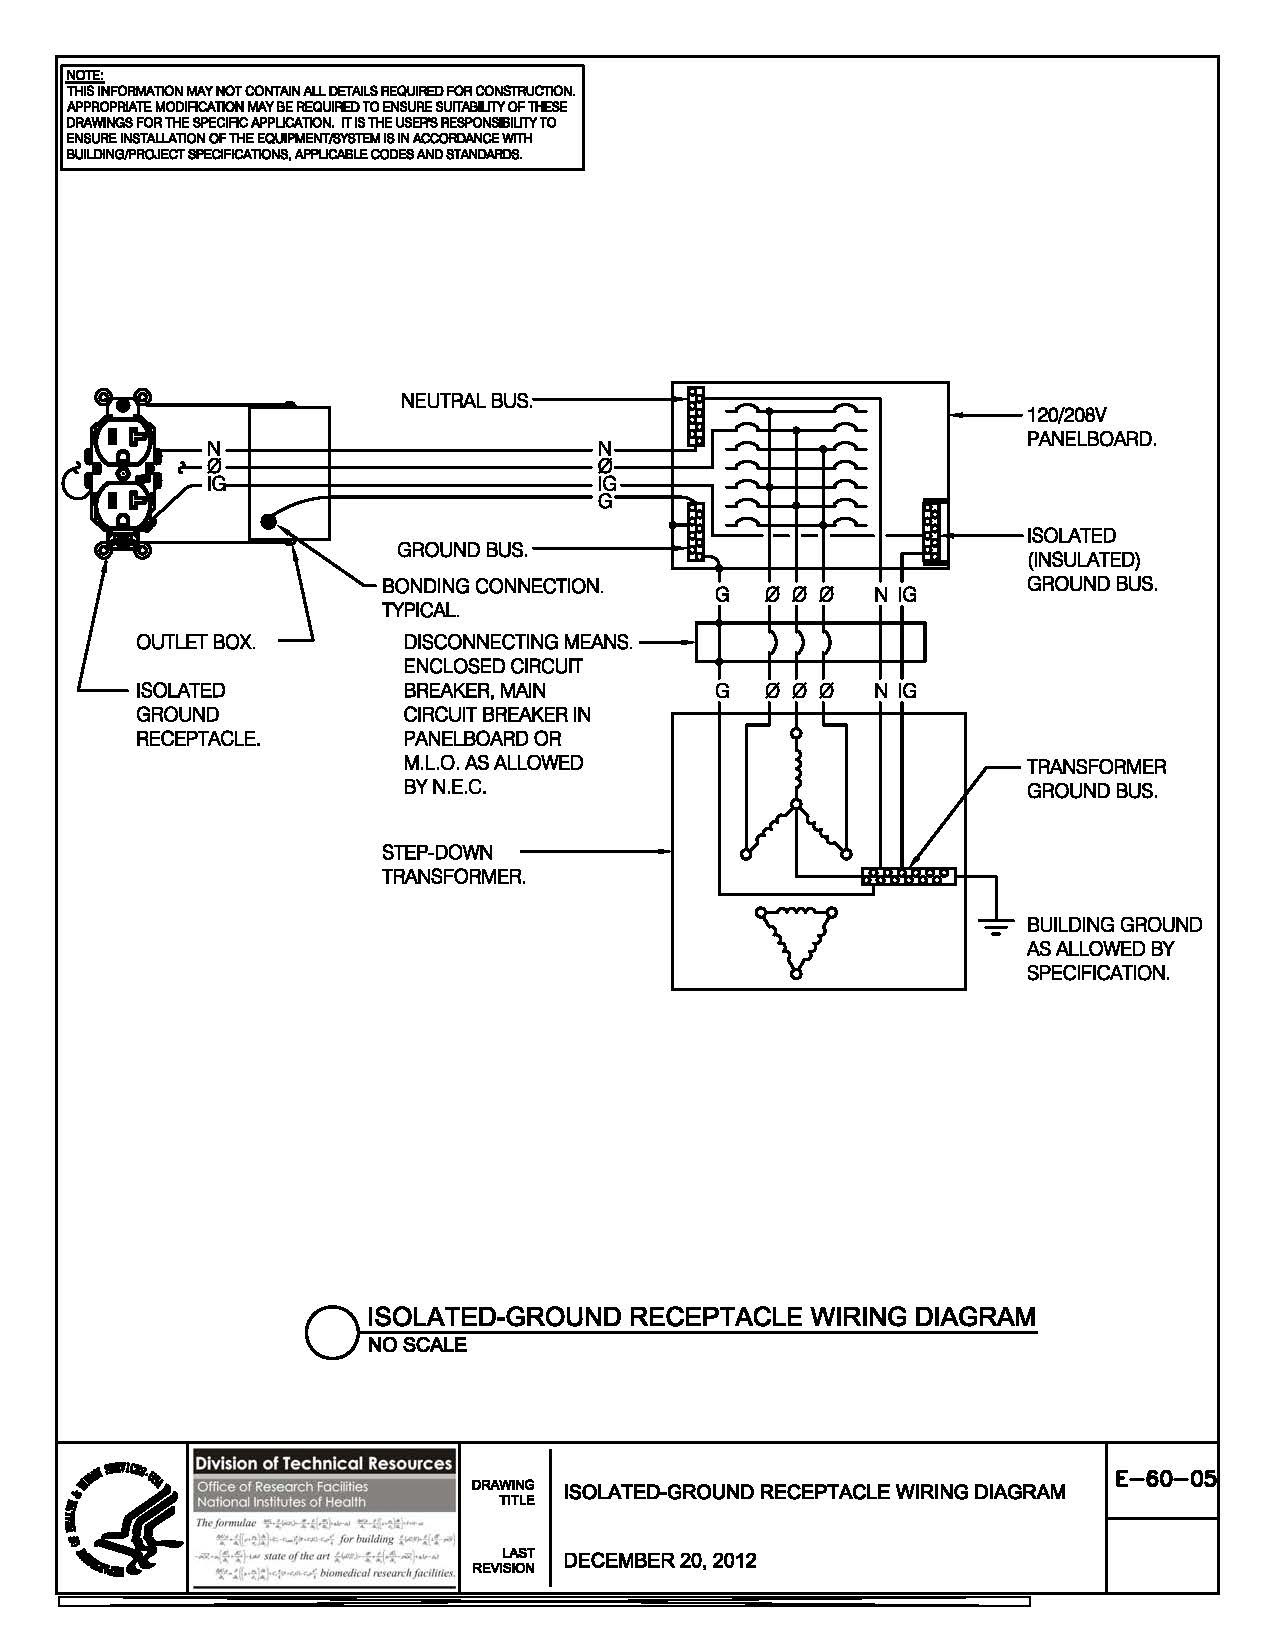 irrigation controller wiring diagram Download-Irrigation Controller Wiring Diagram Reference Sprinkler System Wiring Diagram 9-j